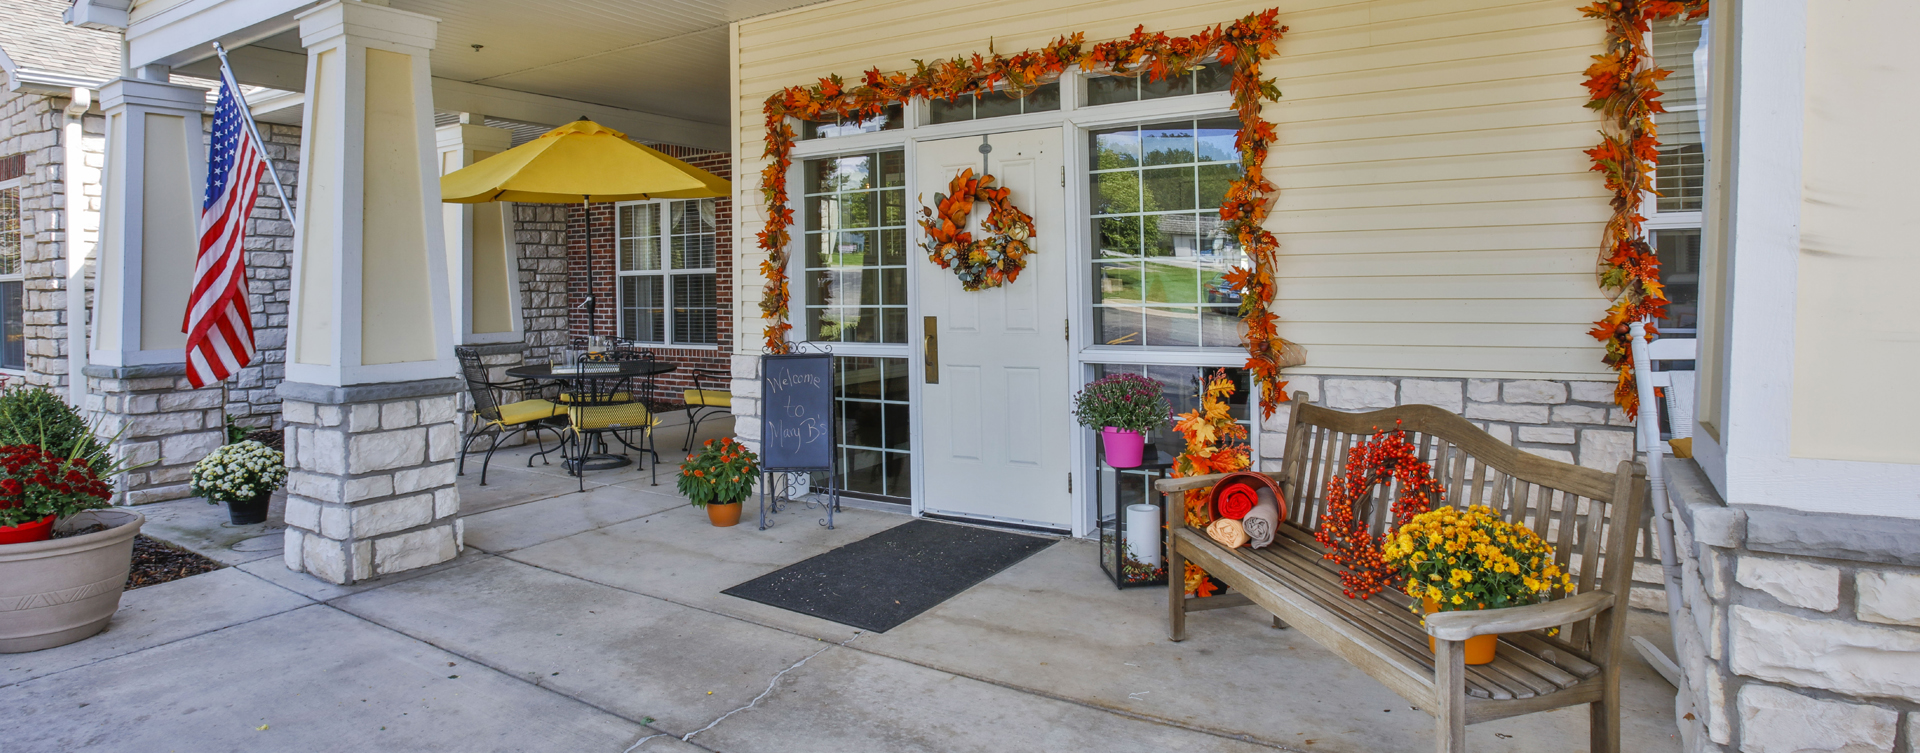 Sip on your favorite drink on the porch at Bickford of Peoria